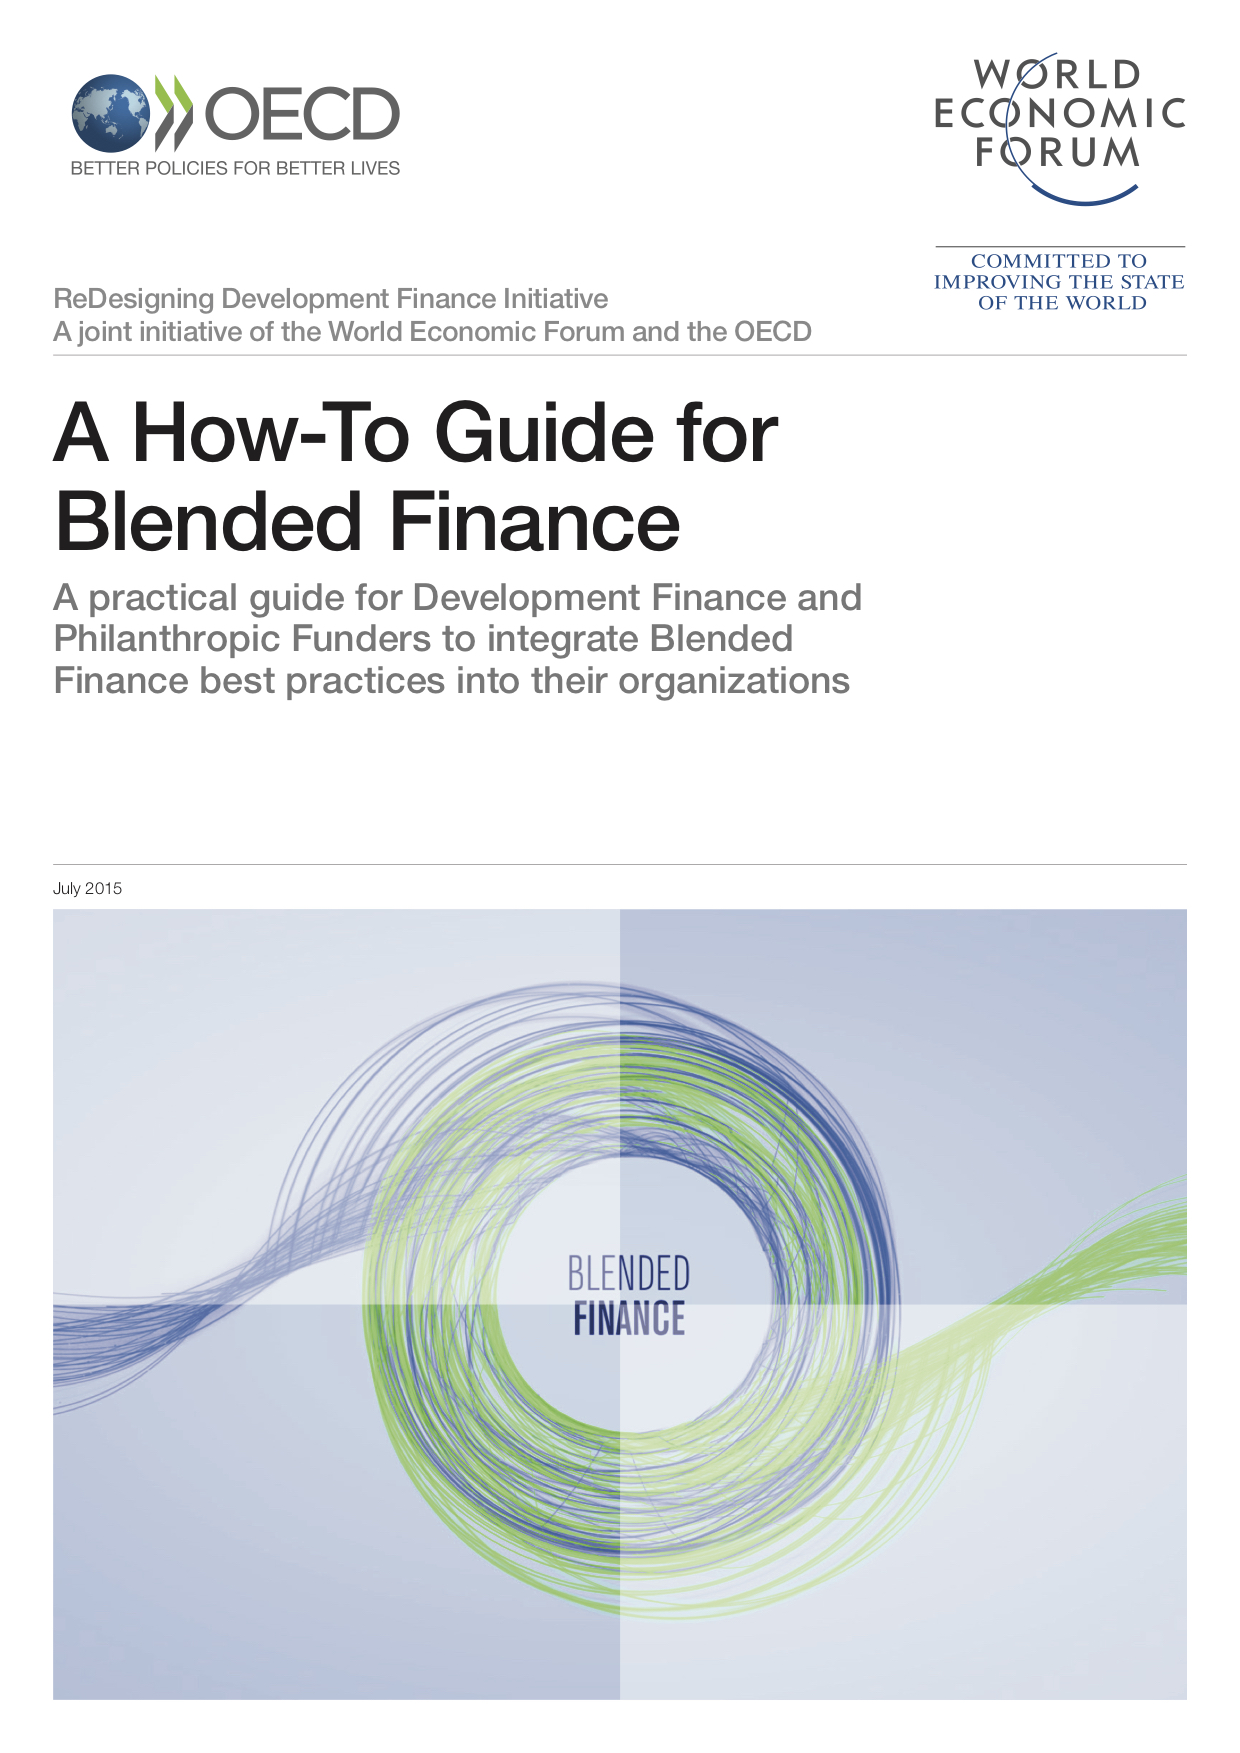 A How-To Guide for Blended Finance: A Practical Guide for Development Finance and Philanthropic Funders to Integrate Blended Finance Best Practices into their Organizations